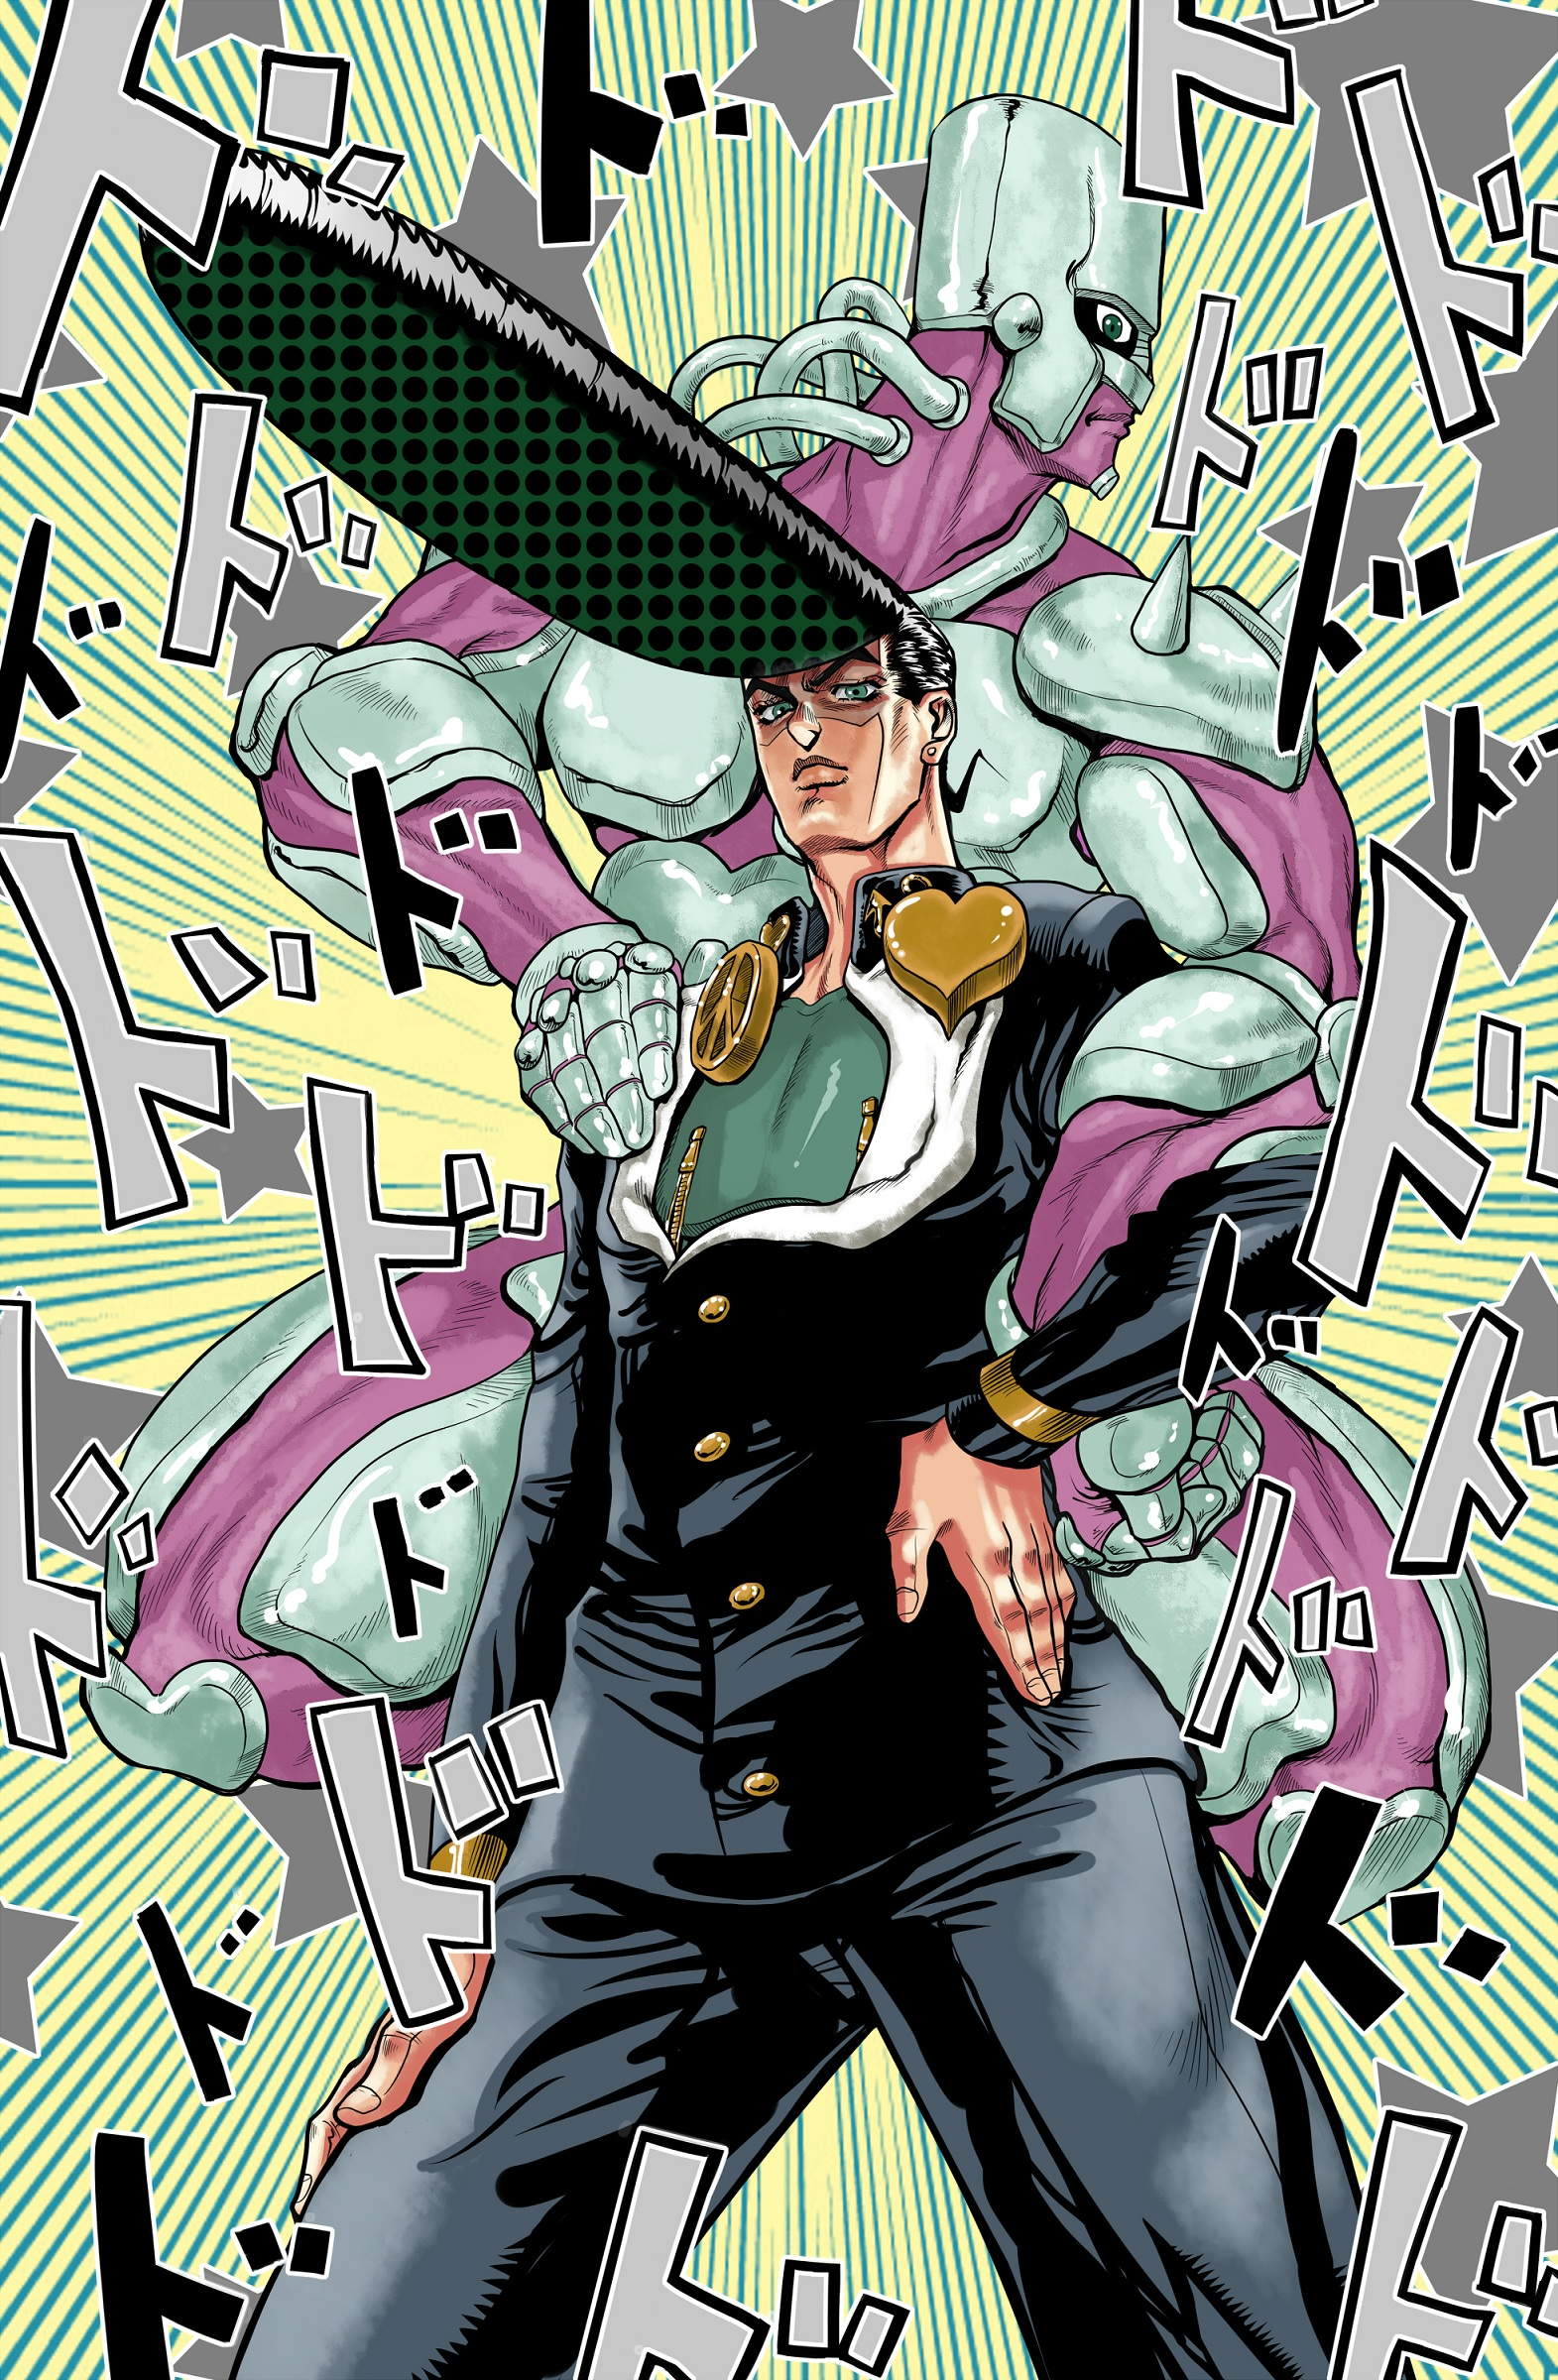 Image 591633 Jojo S Bizarre Adventure Know Your Meme He comes painted in his pink and blue color scheme, and includes several. bizarre adventure